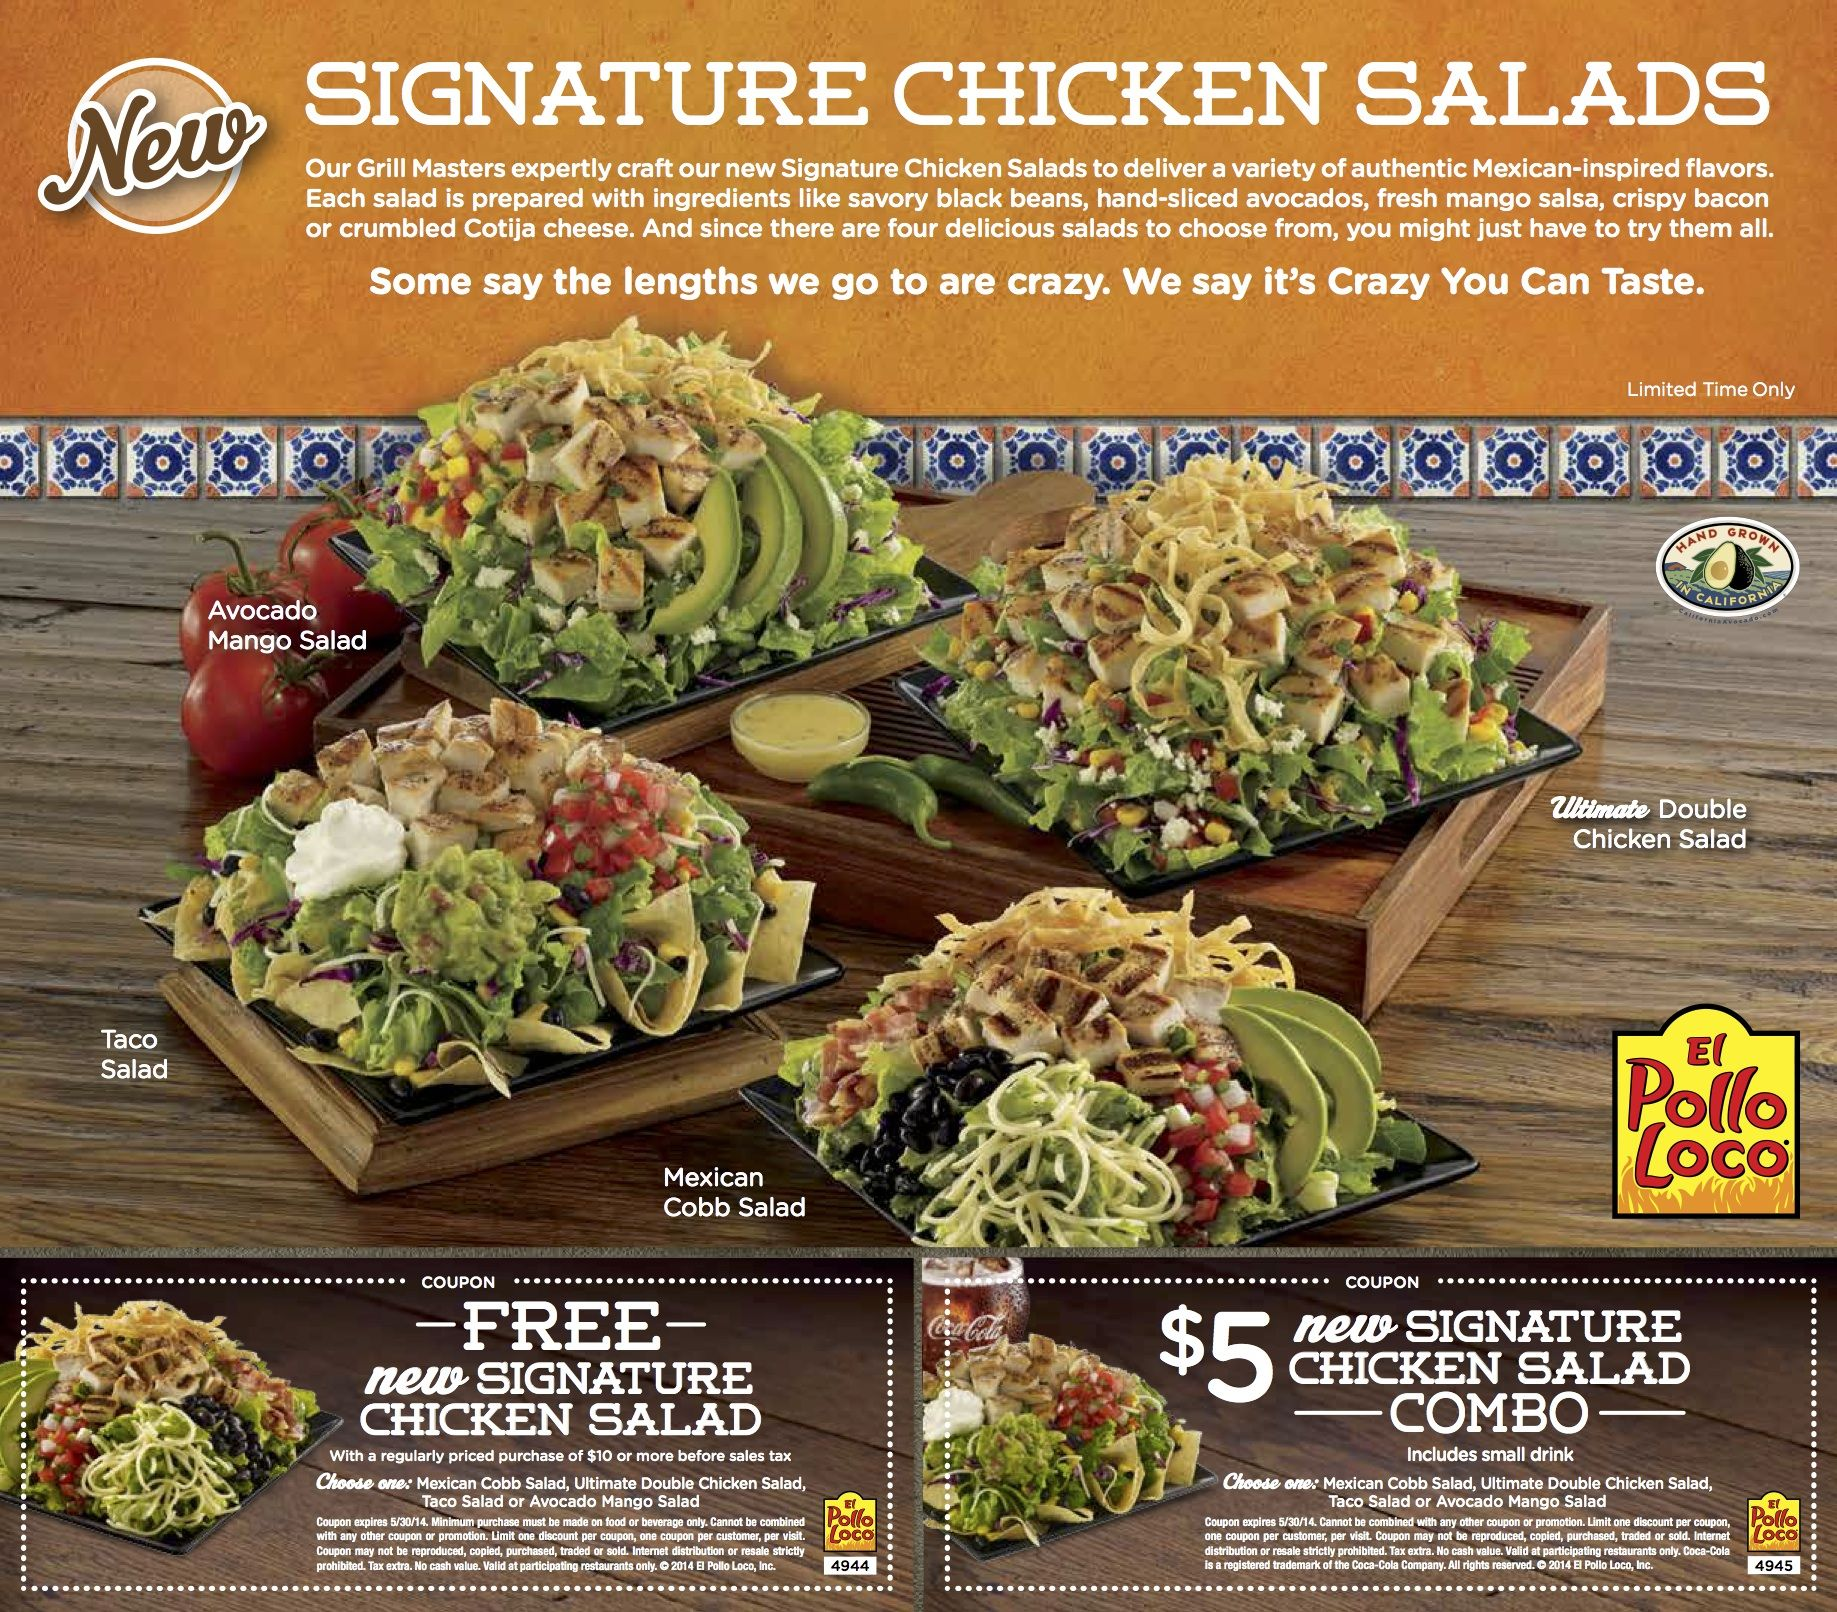 photograph relating to El Pollo Loco Printable Coupons named El pollo loco unique promotions - Haunted residences within just chicago Room